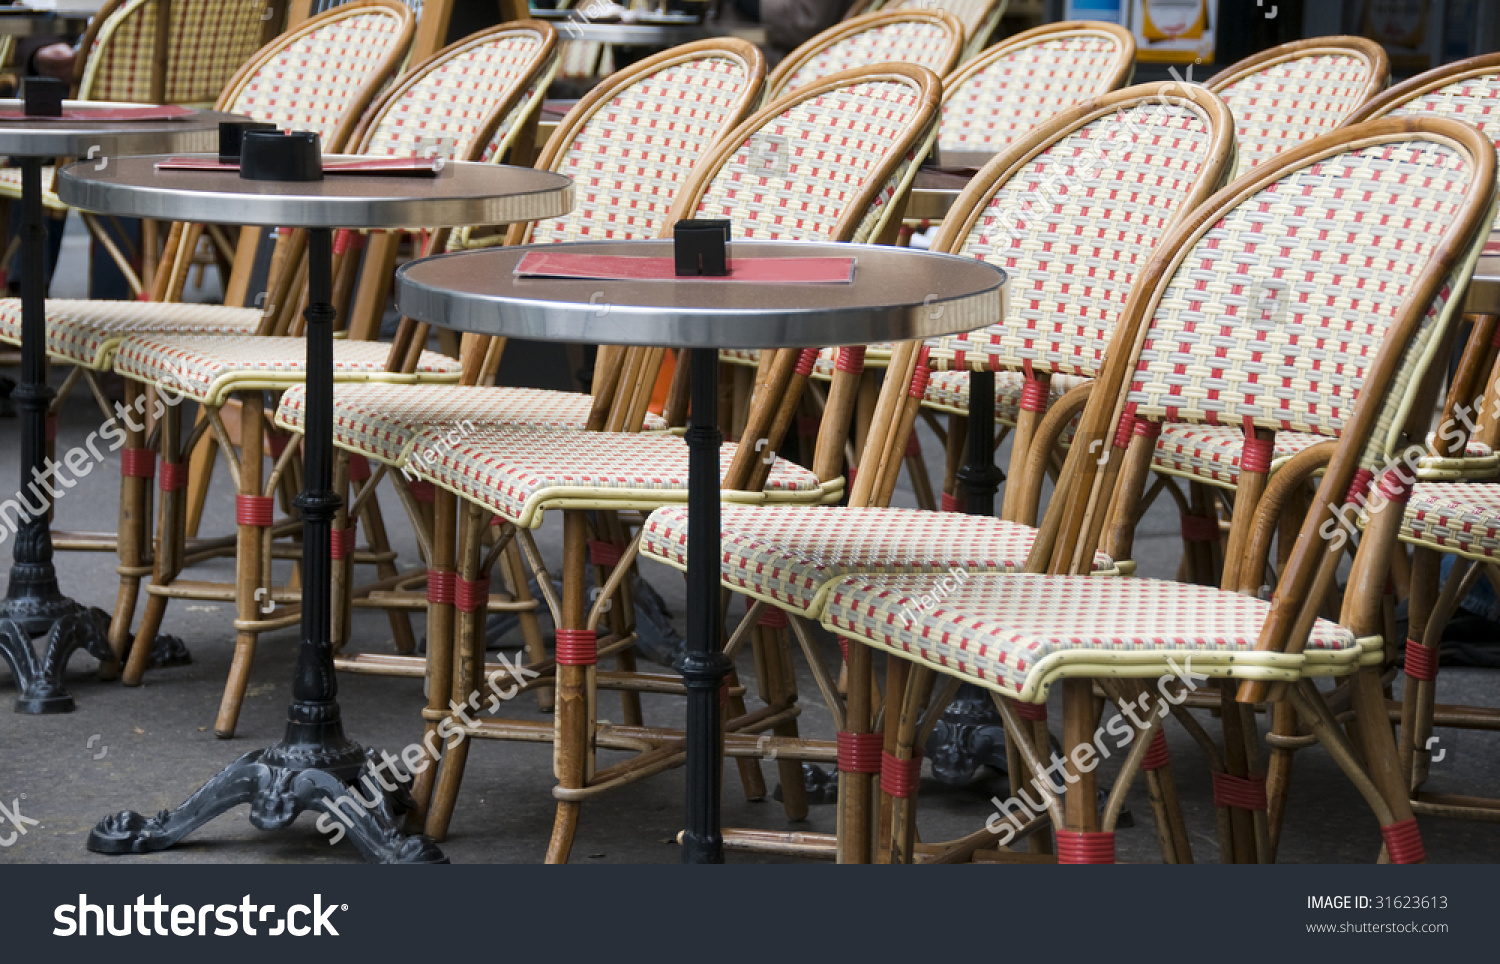 paris bistro chairs outdoor amazon bungee chair typical generic cafe setting stock photo